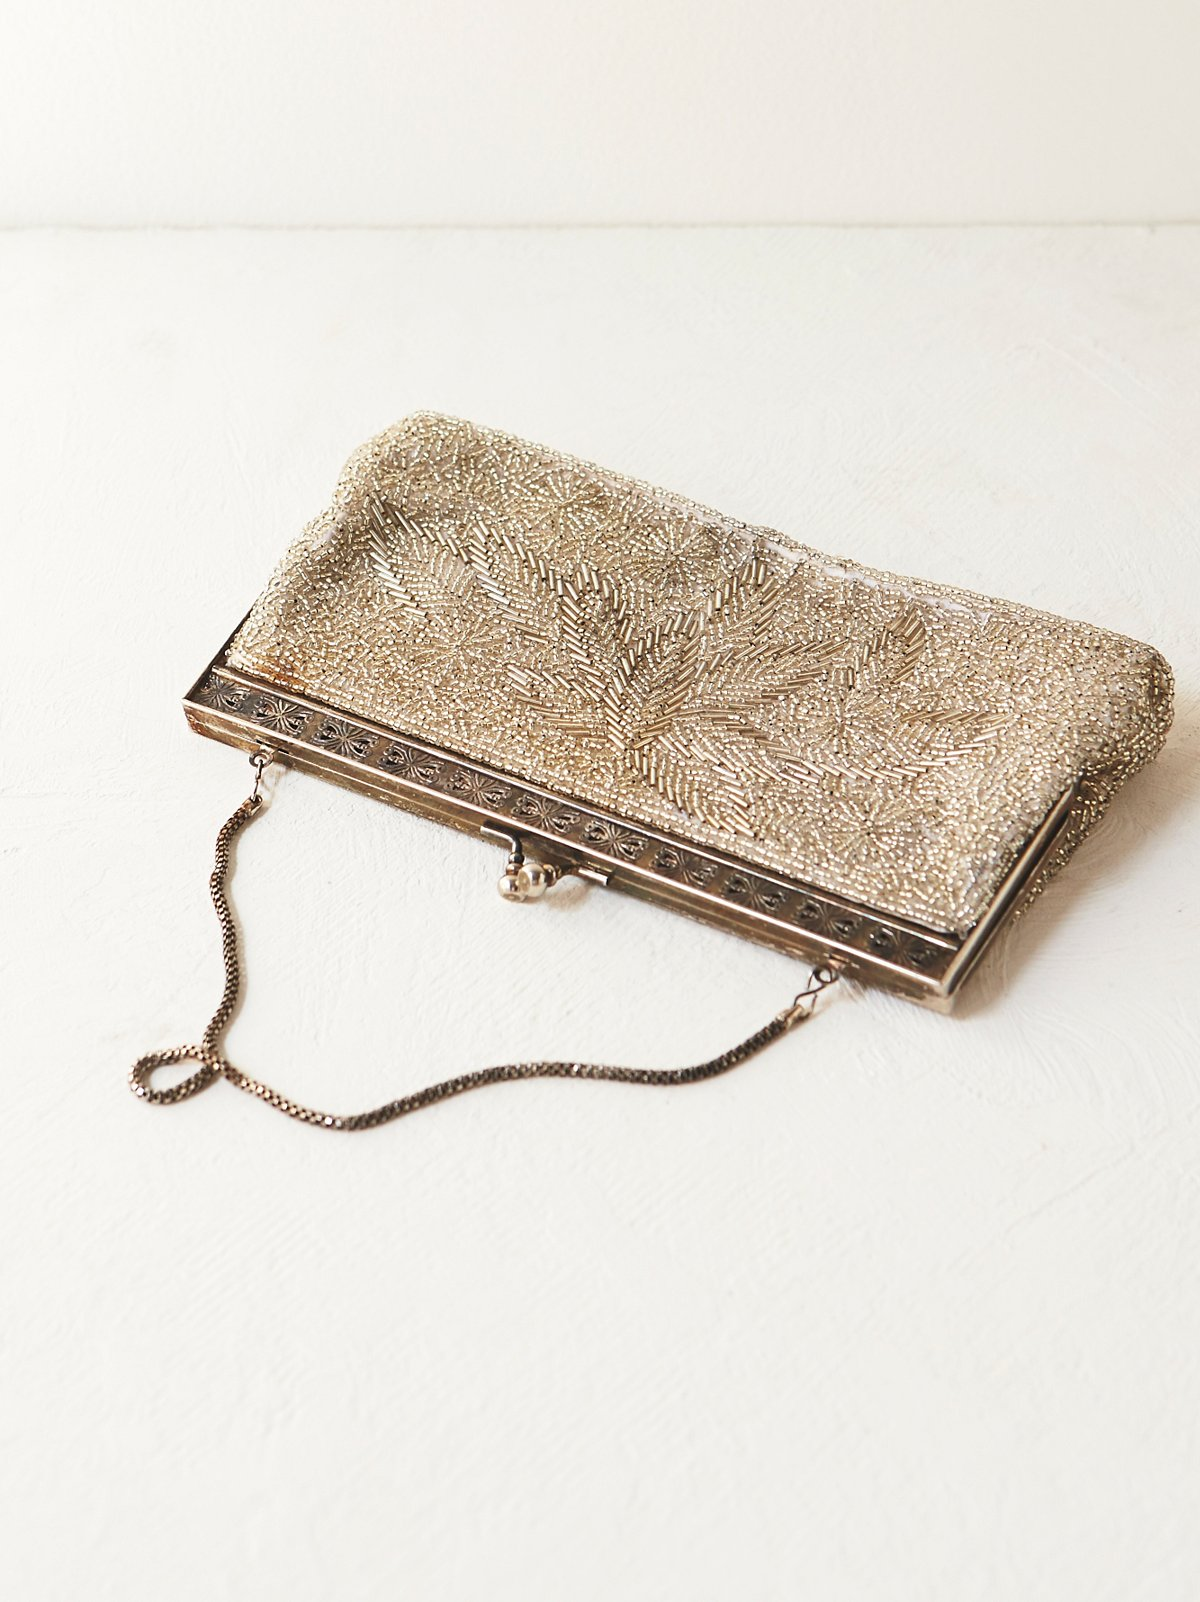 Vintage 1950s Beaded Clutch